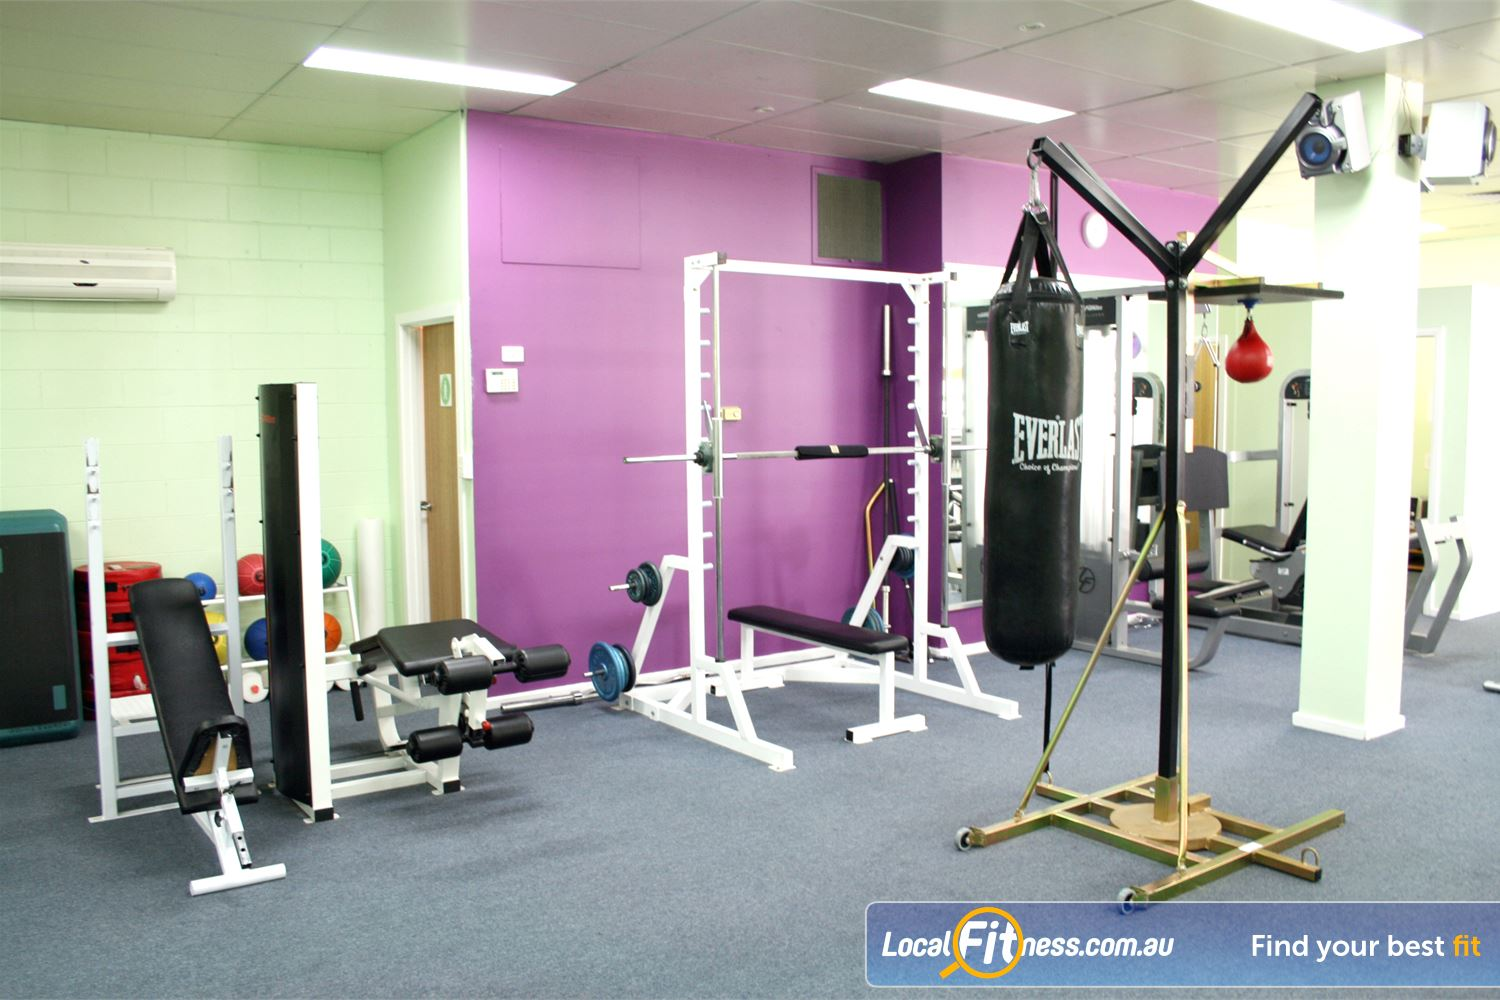 Berry Fitness Centre Edithvale Our dedicated Edithvale boxing area.